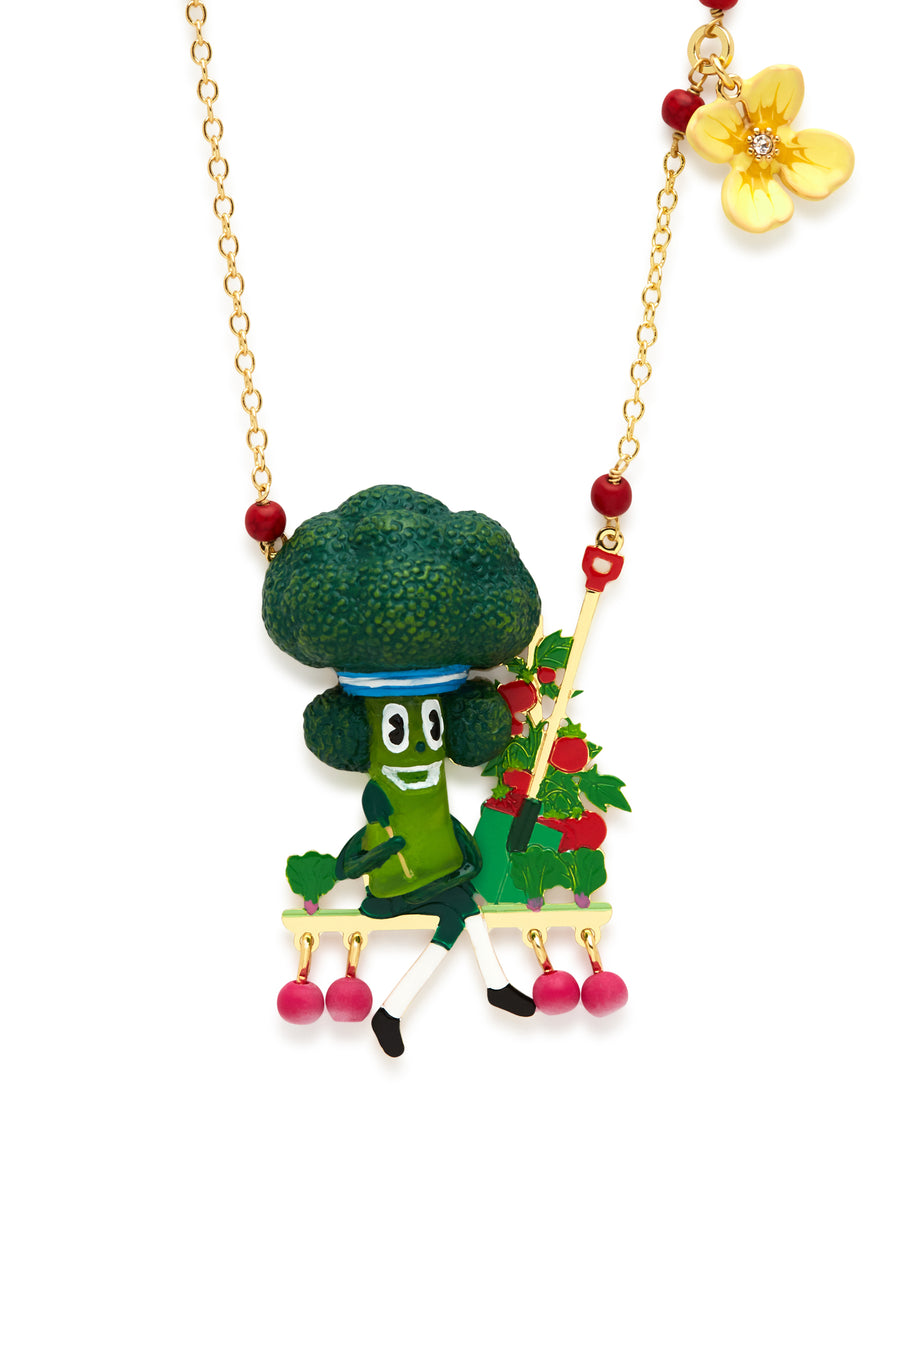 Brocolli Necklace